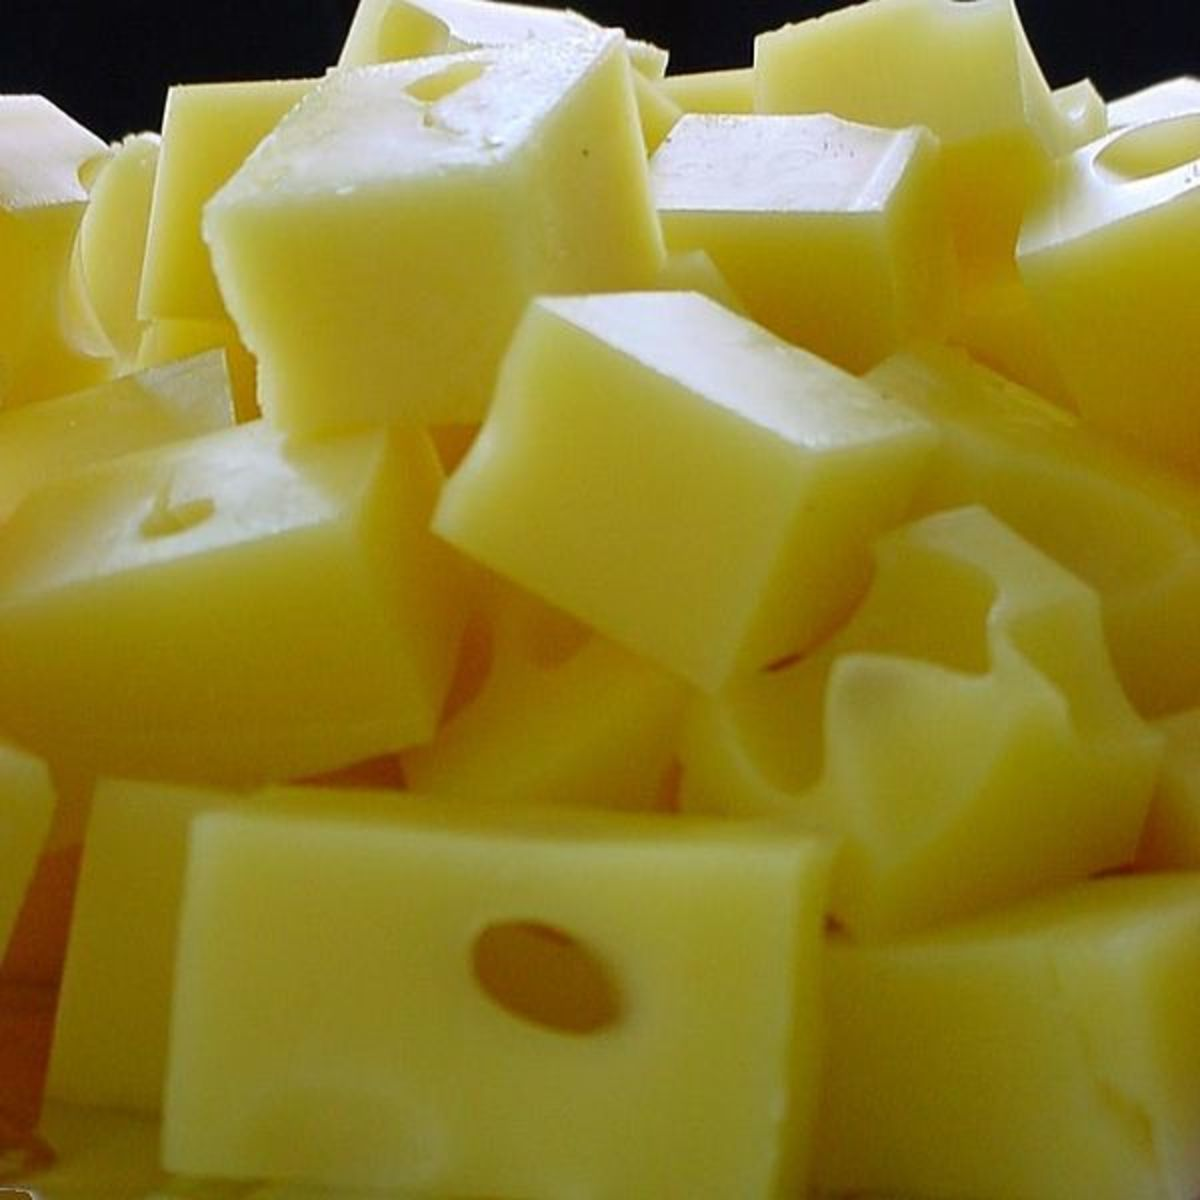 Emmental cheese, one of the Swiss cheese varieties.